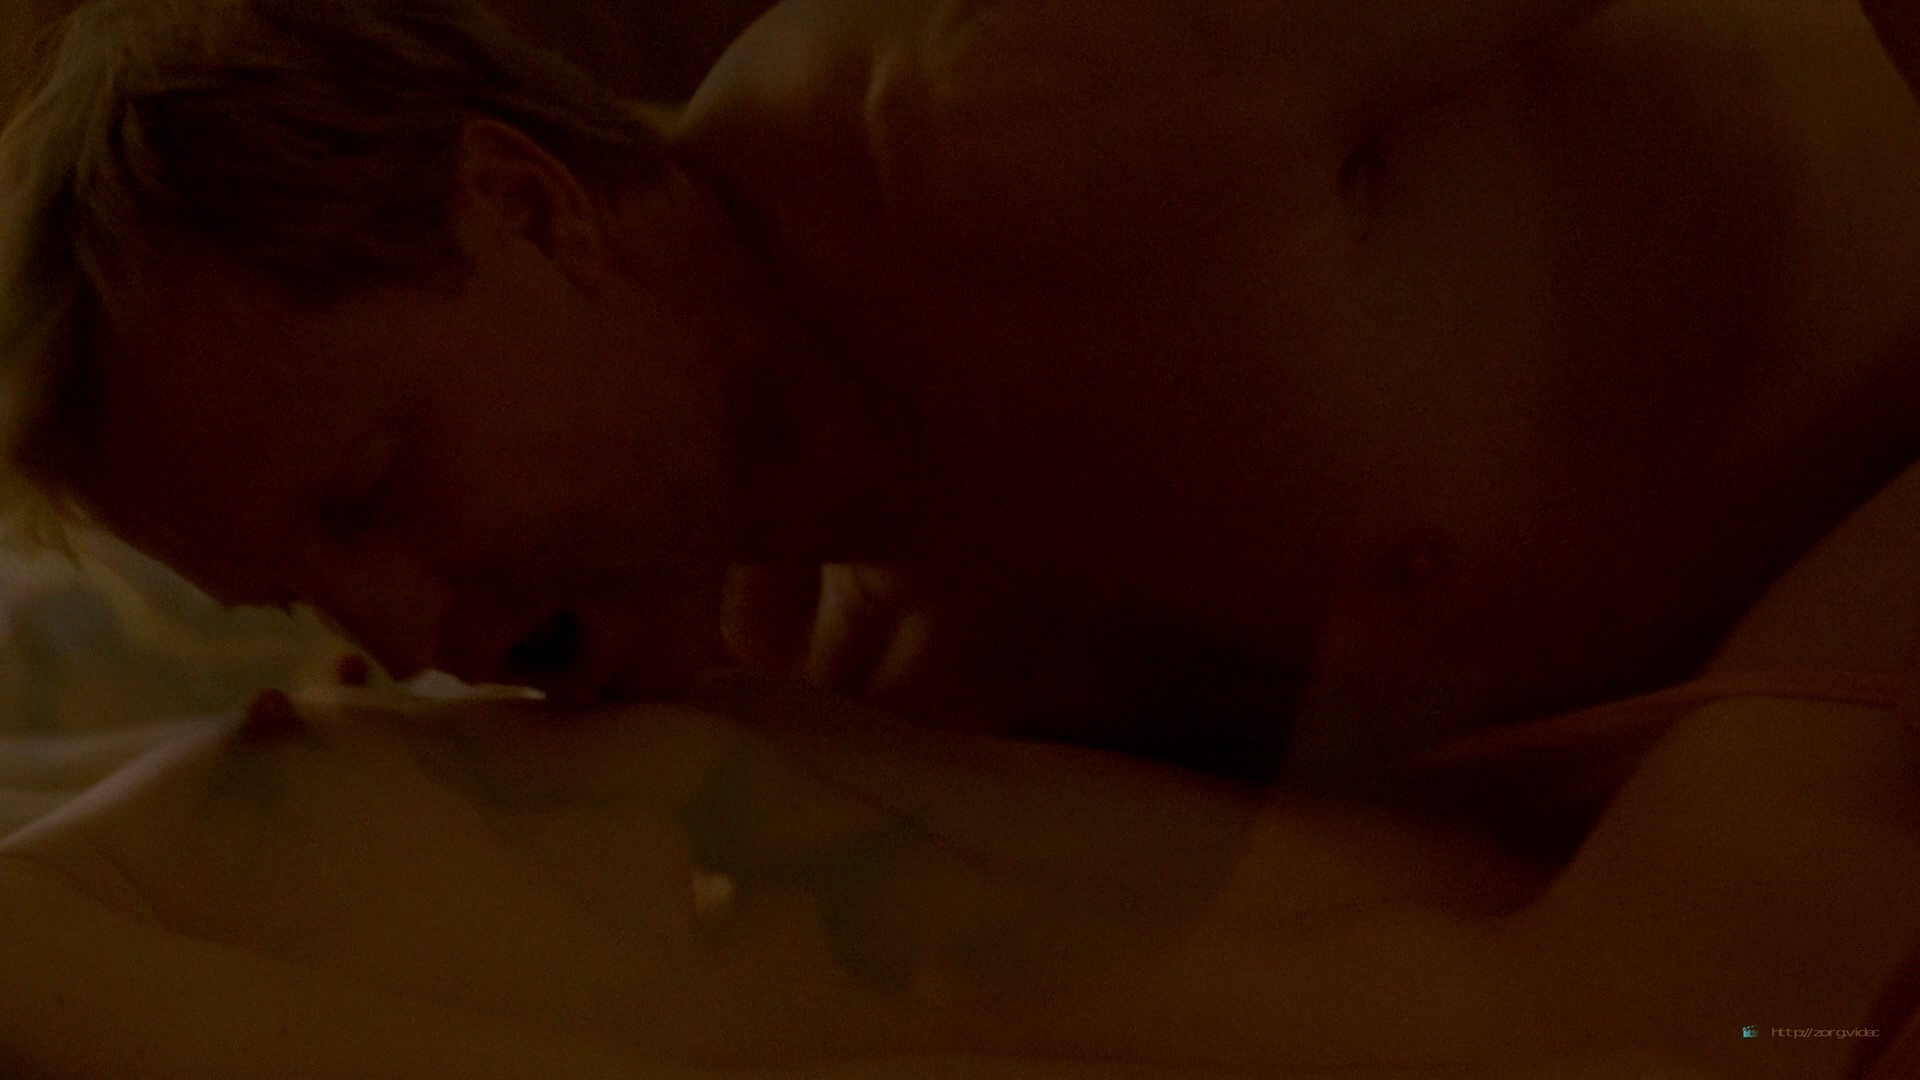 Michelle Monaghan nude brief topless and sex - True Detective (2014) S01 HD 1080p BluRay (8)